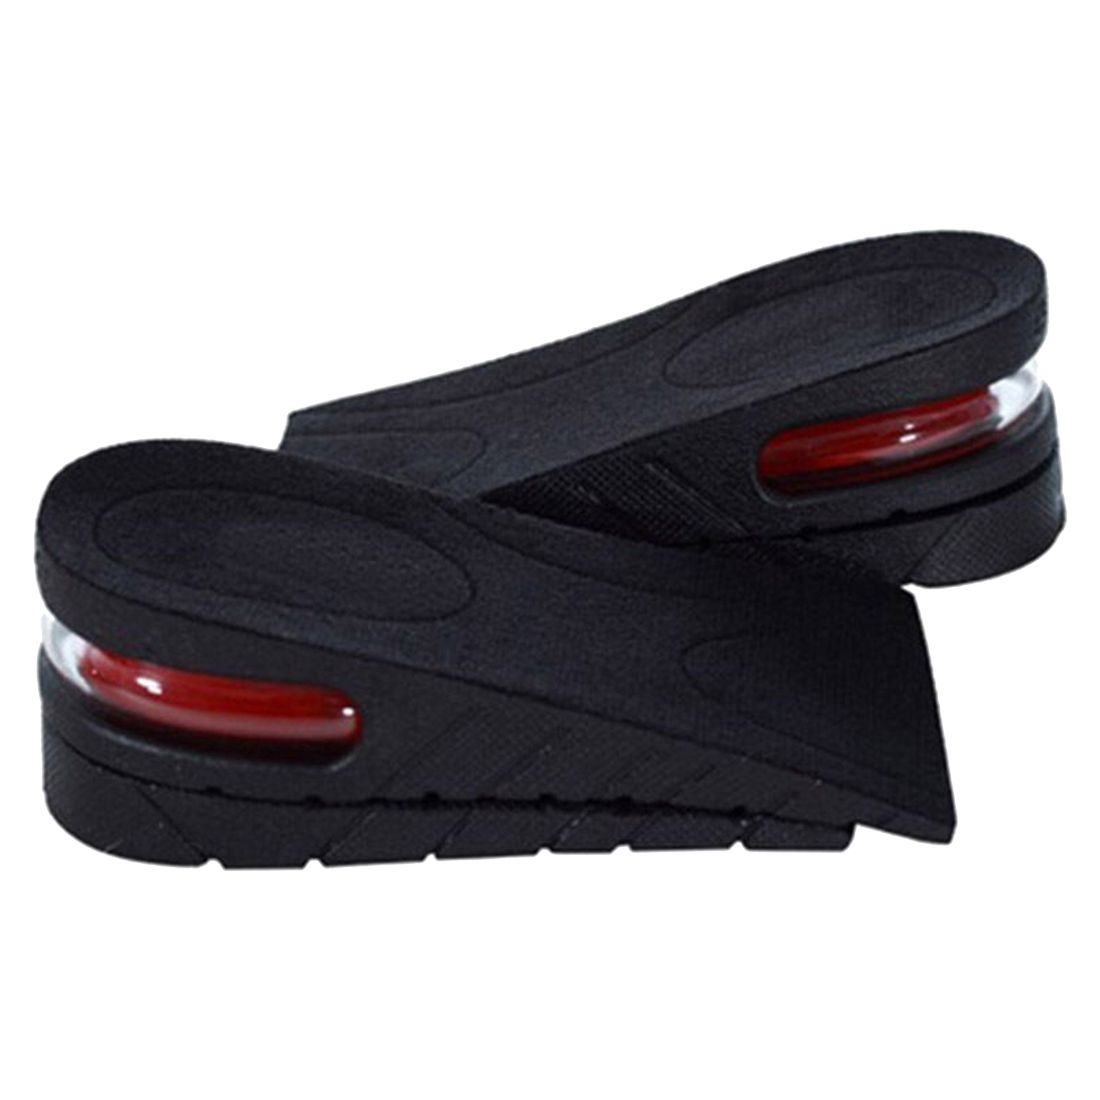 ASDS Men Women Shoe Insole Air Cushion Heel insert Increase Tall Height Lift 5cm 2016 2 pcs invisible shoe taller insole 6 color increasing height short helper half lift air 2 5cm cushion insert 6 colors